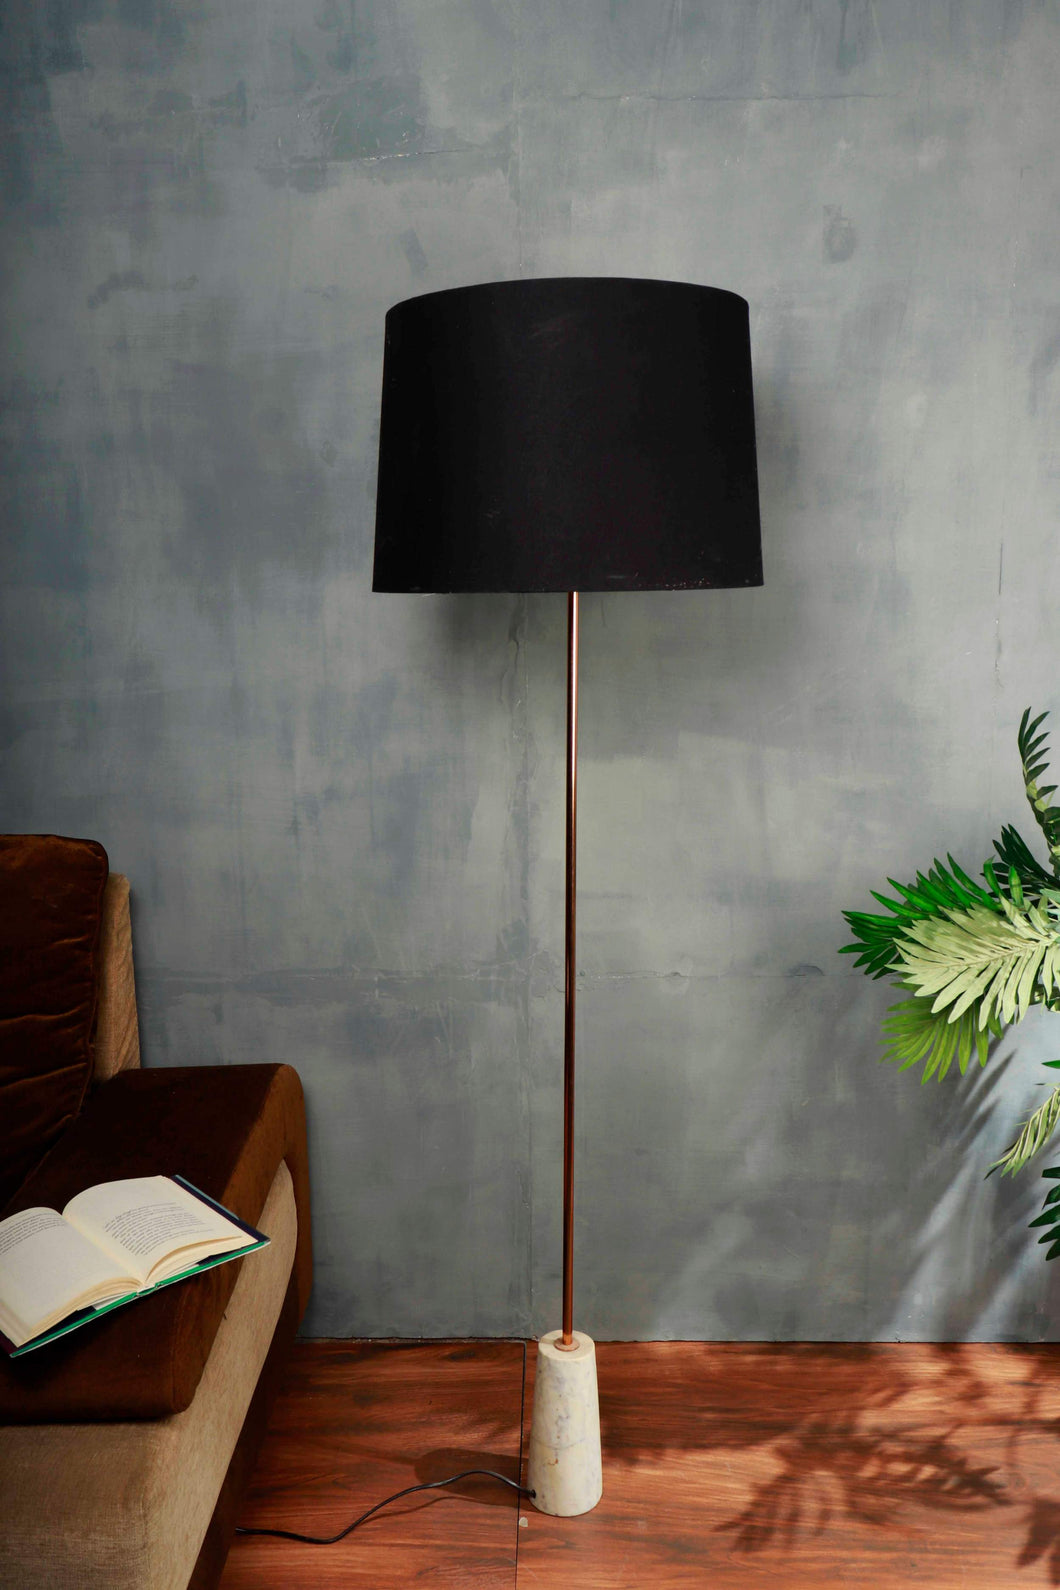 Marble Arrow Lamp Stand with Tapered Black Lampshade